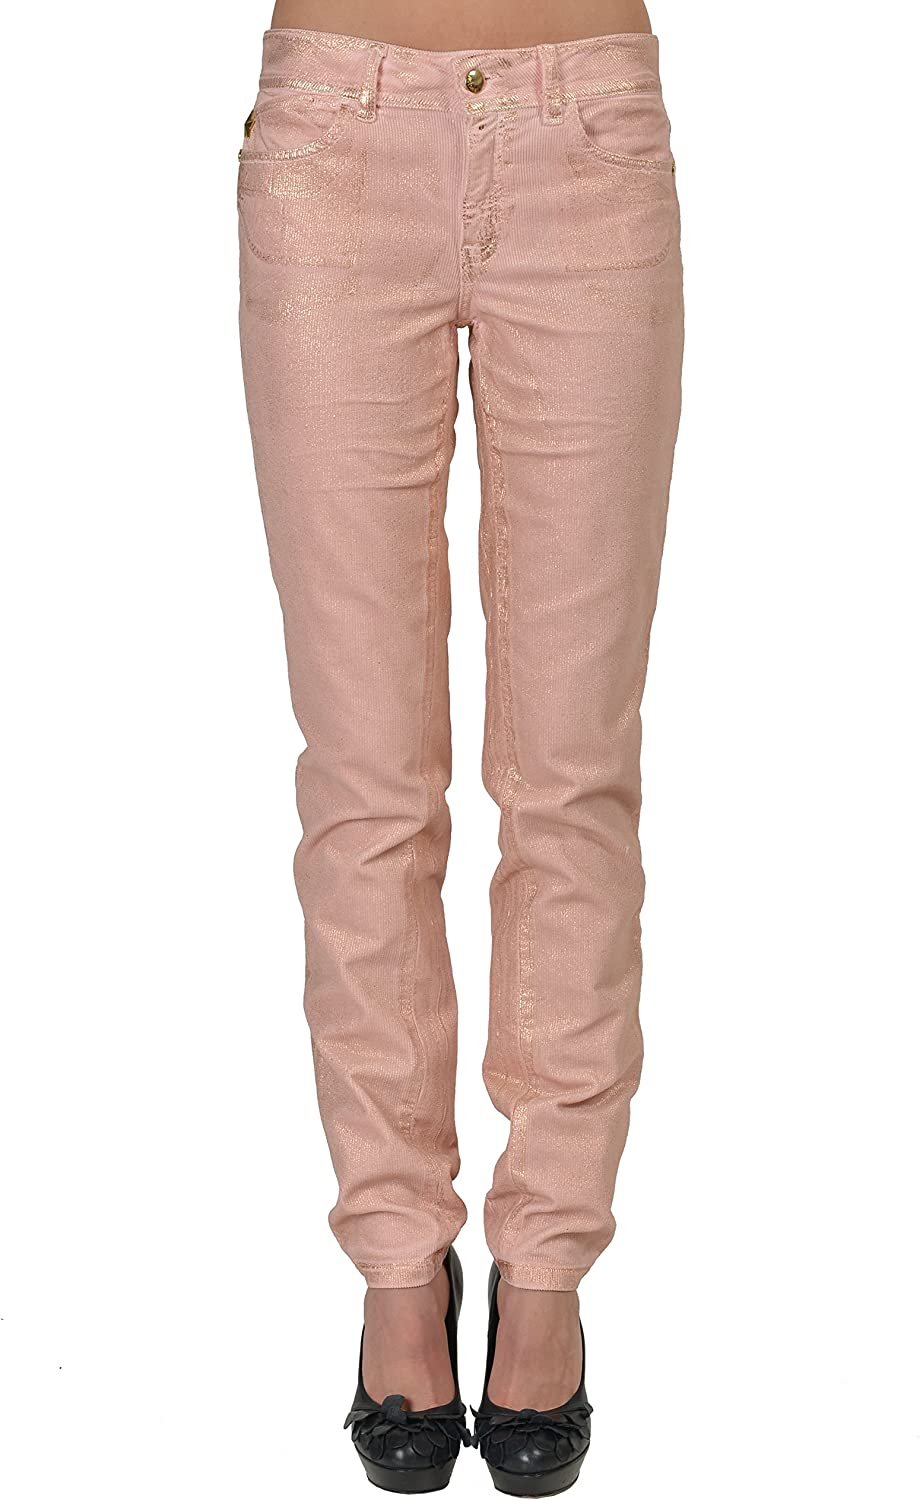 Just Cavalli Luxury gold Sparkles Covered Pink Corduroy Skinny Jeans US 4 IT 26